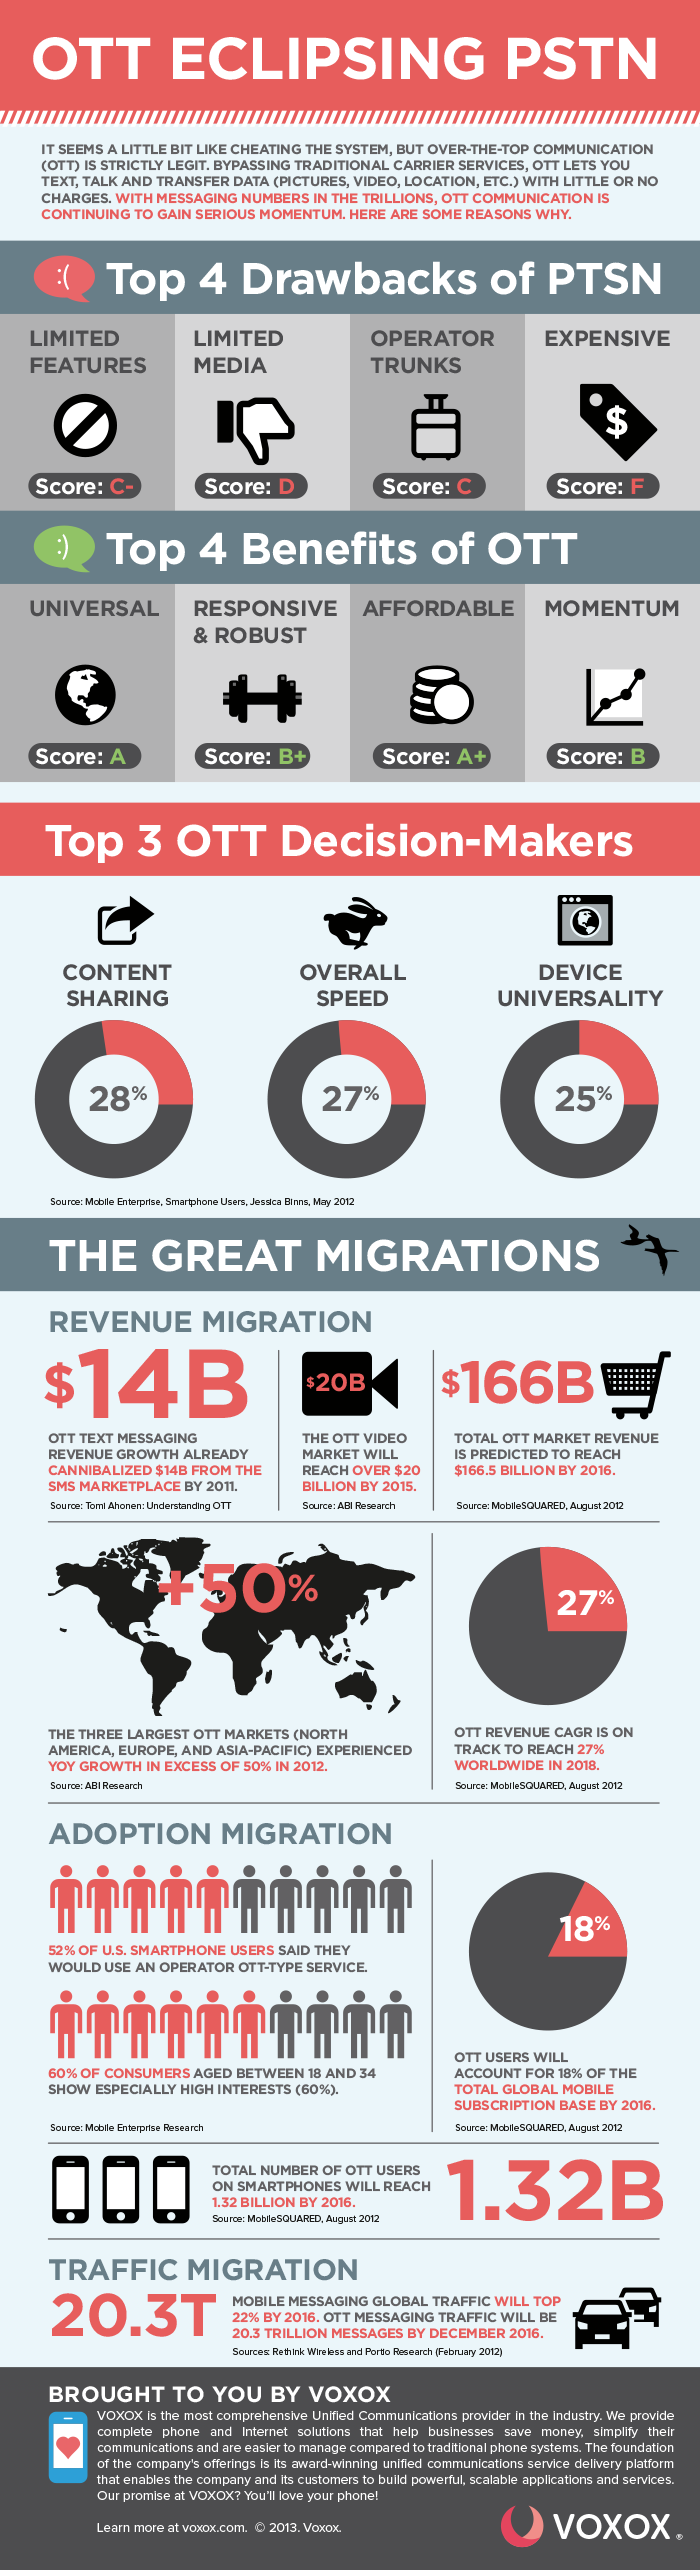 OTT Apps Voxox Infographic